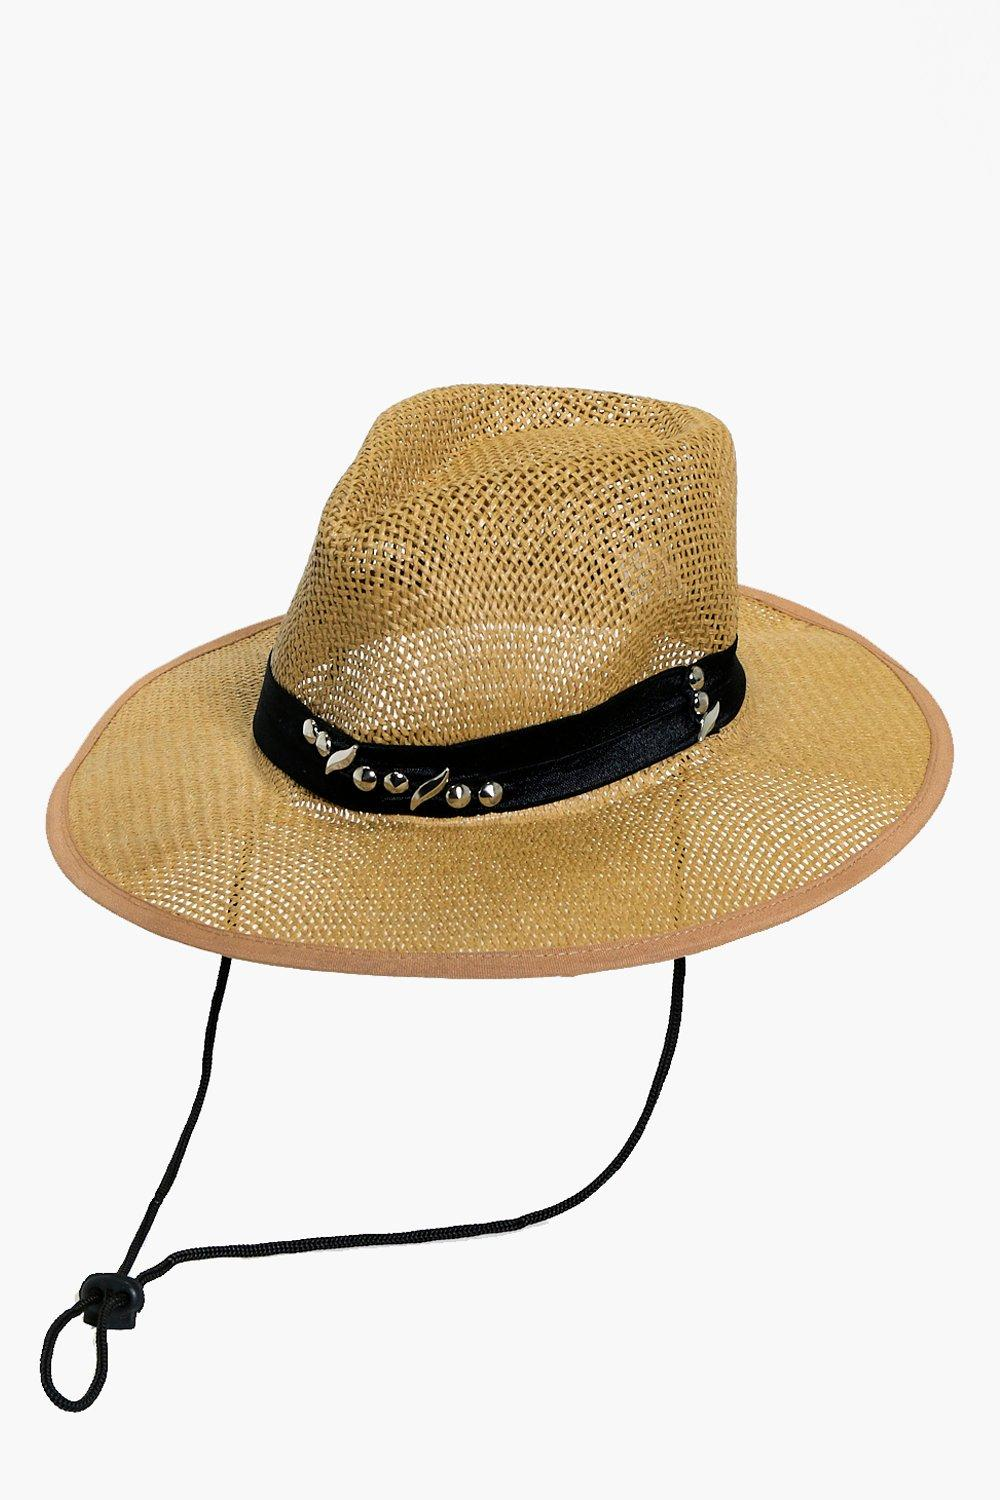 Embellished Straw Fedora - natural - Maisie Embell